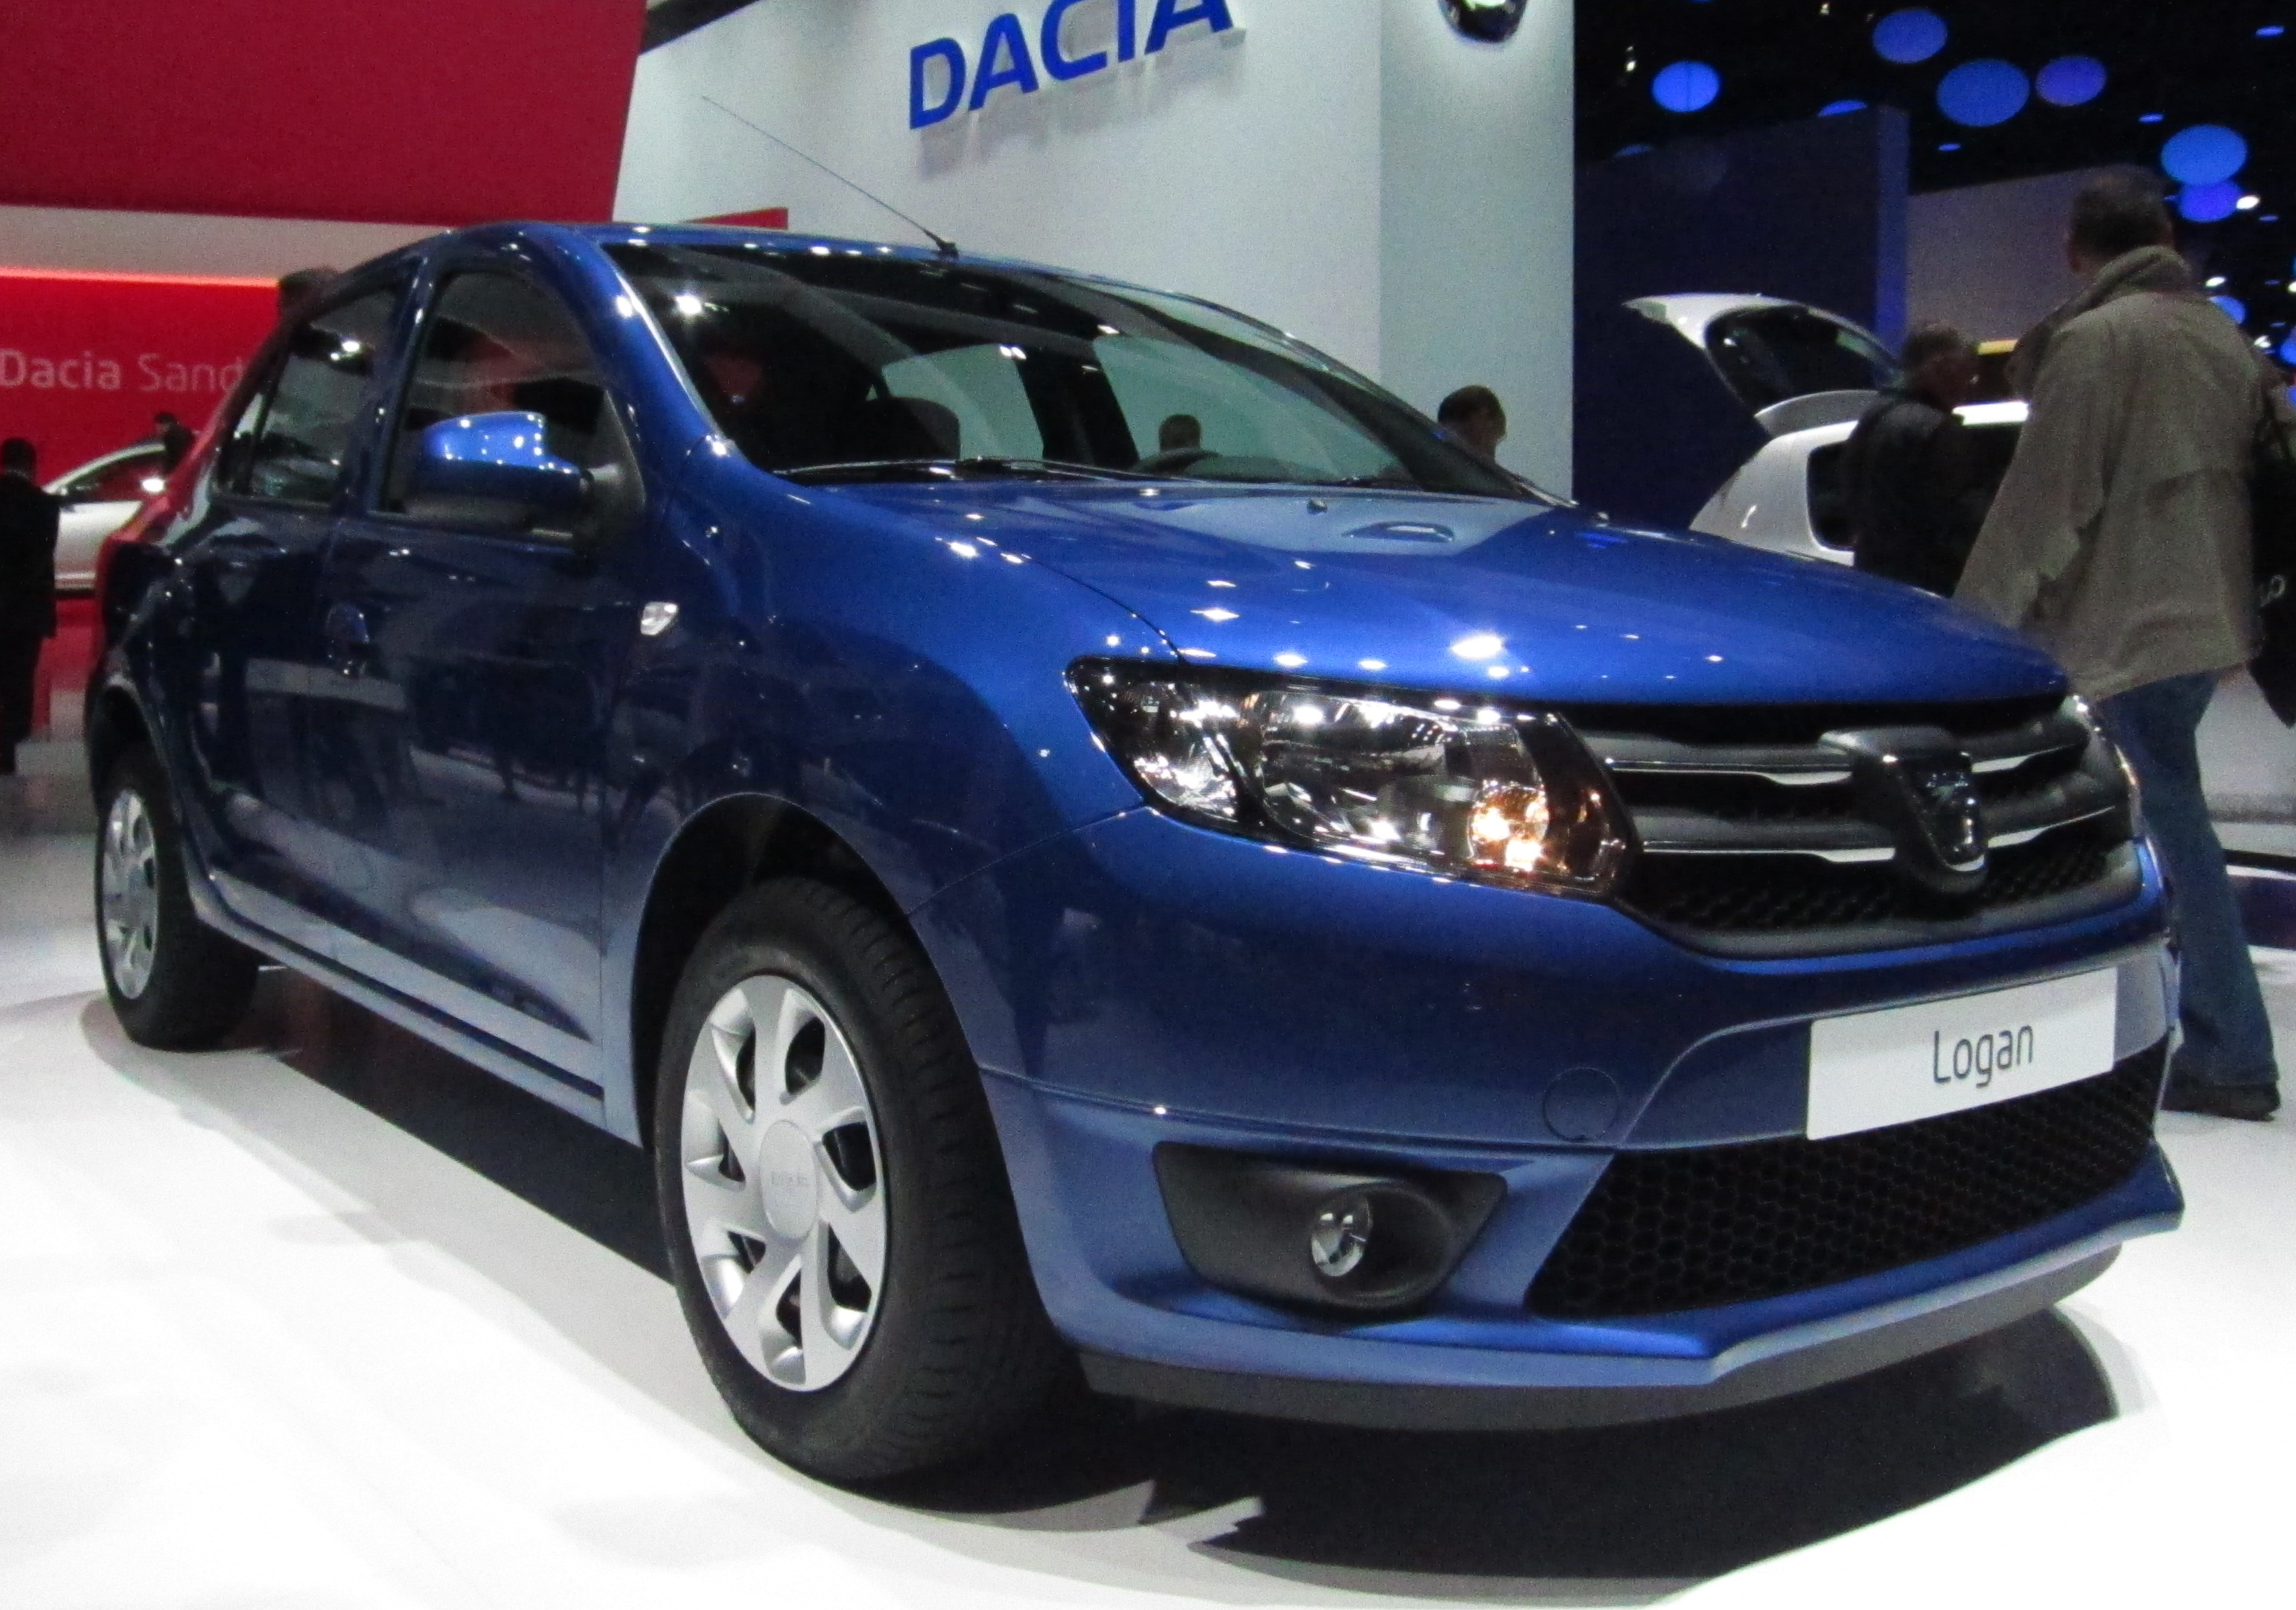 Pictures of dacia logan #4